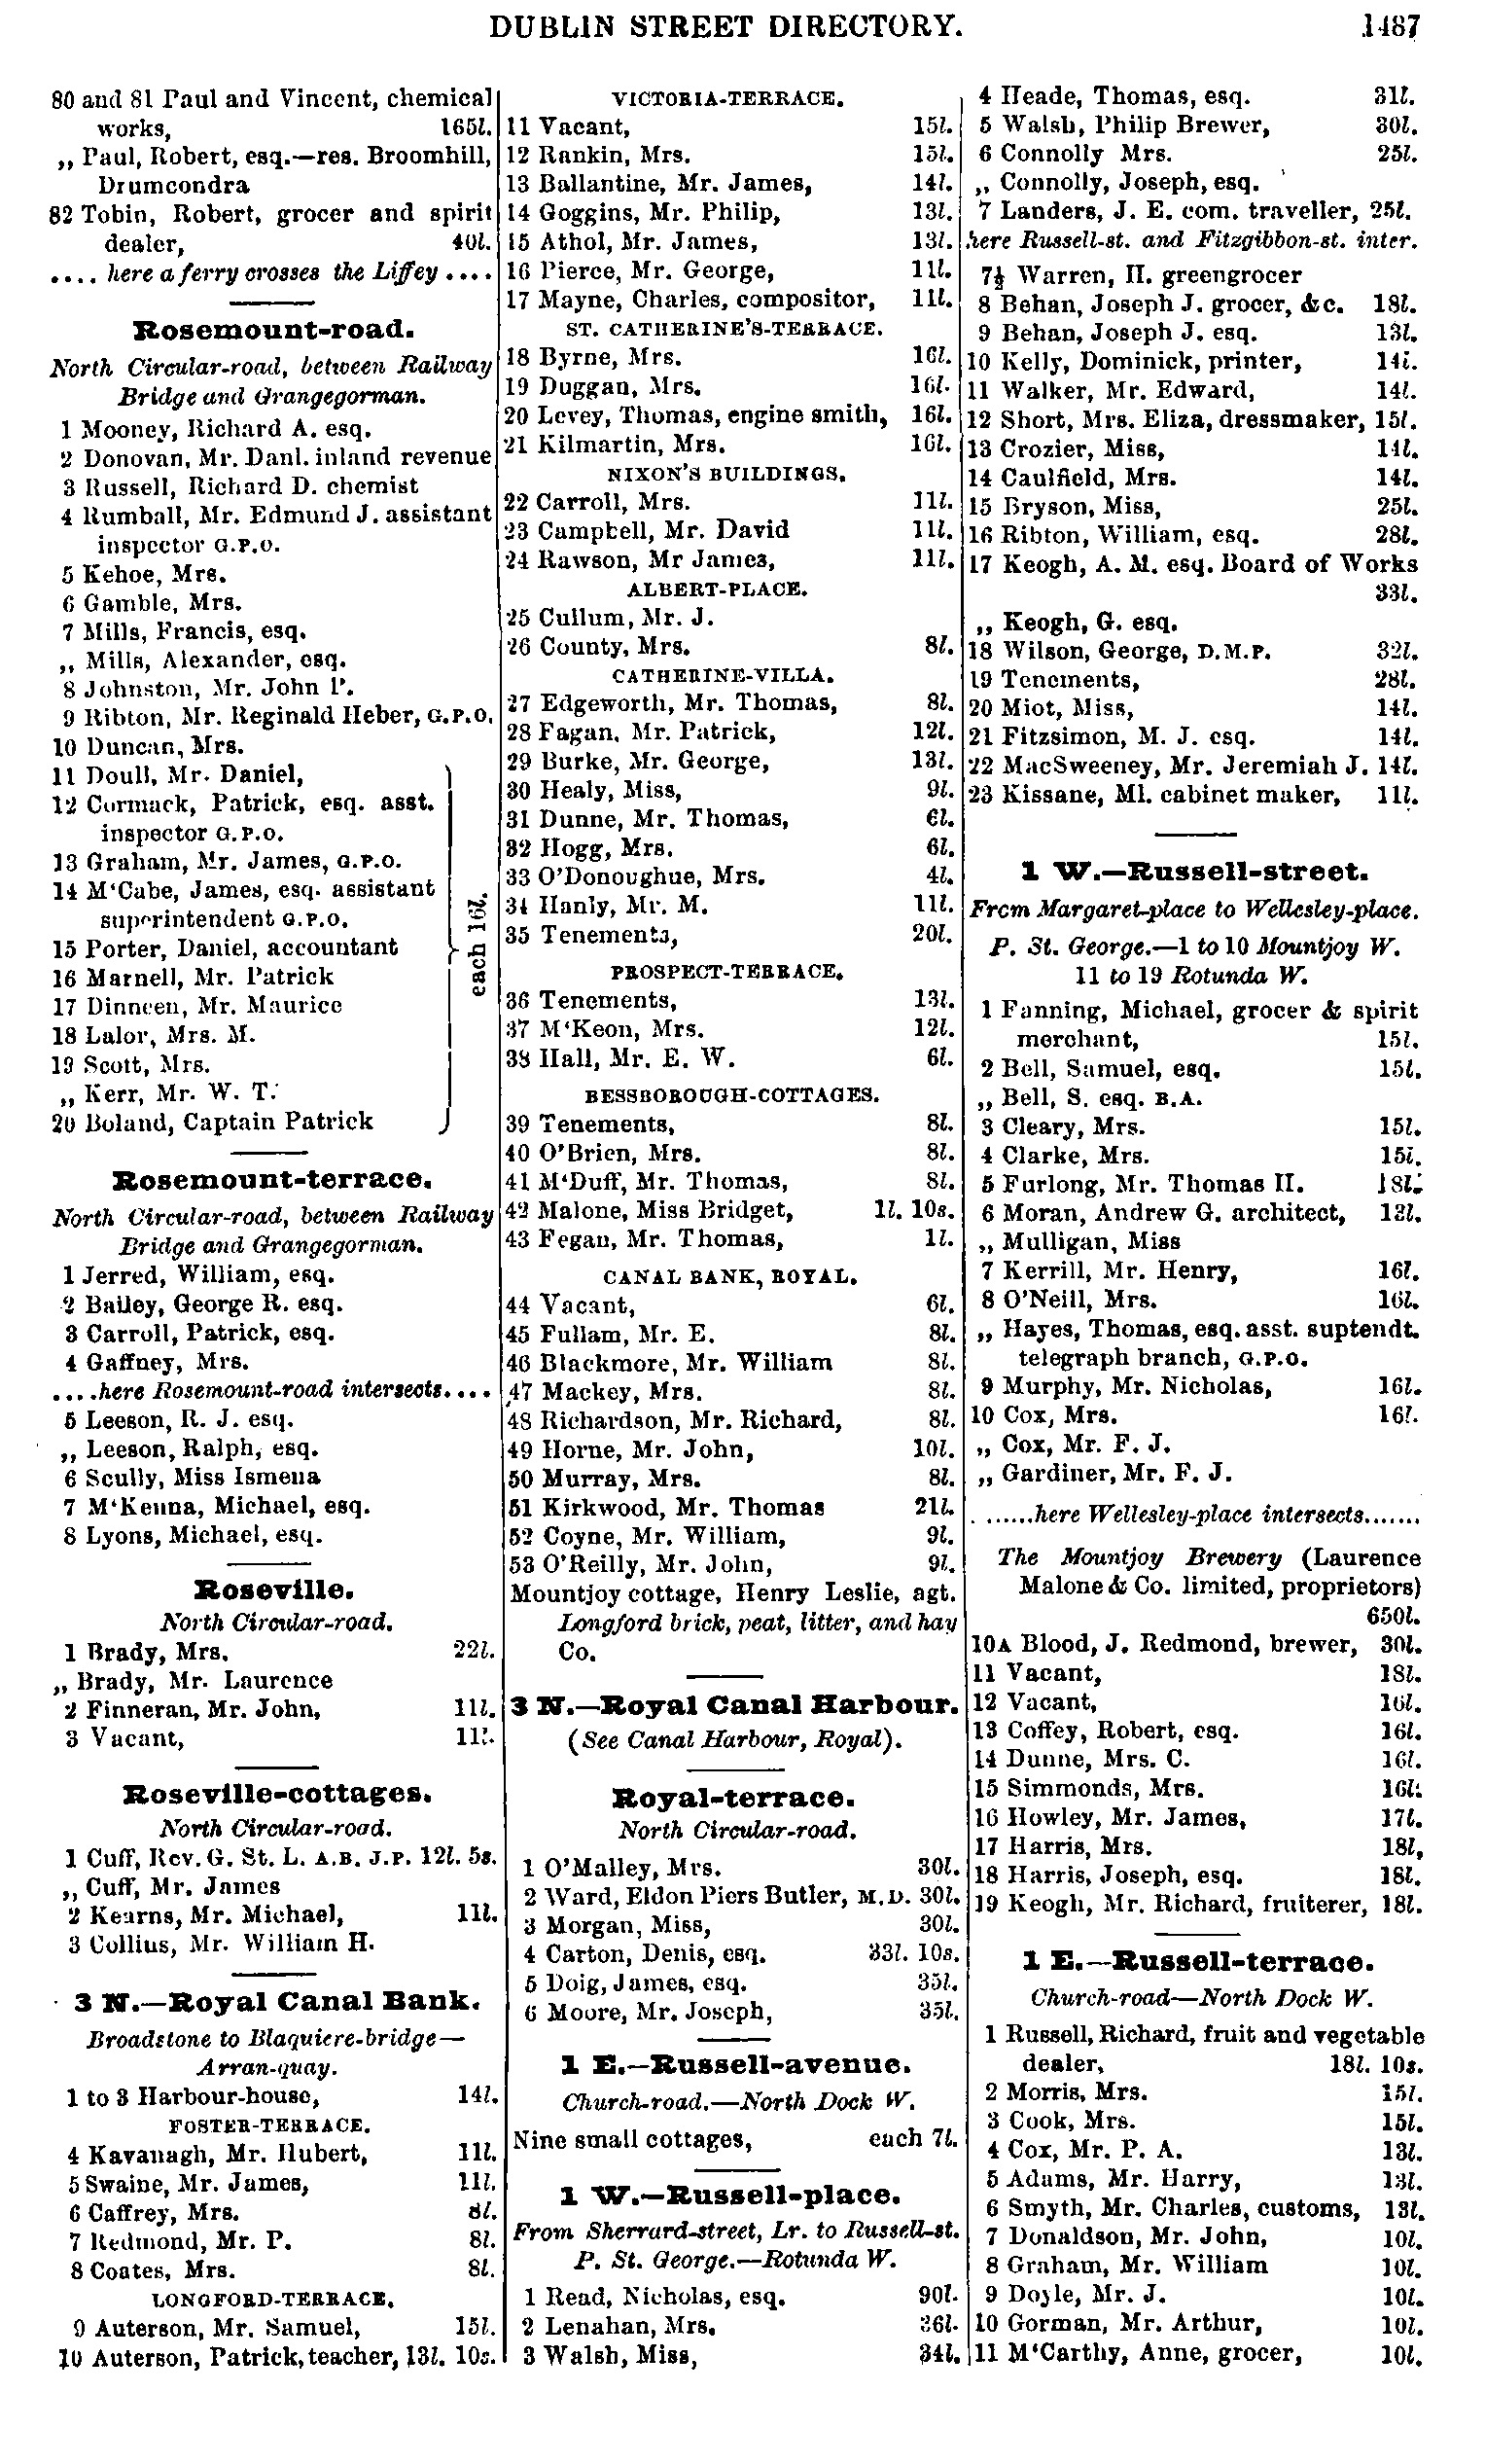 Michael Fanning 1894 Dublin Thom's Directory